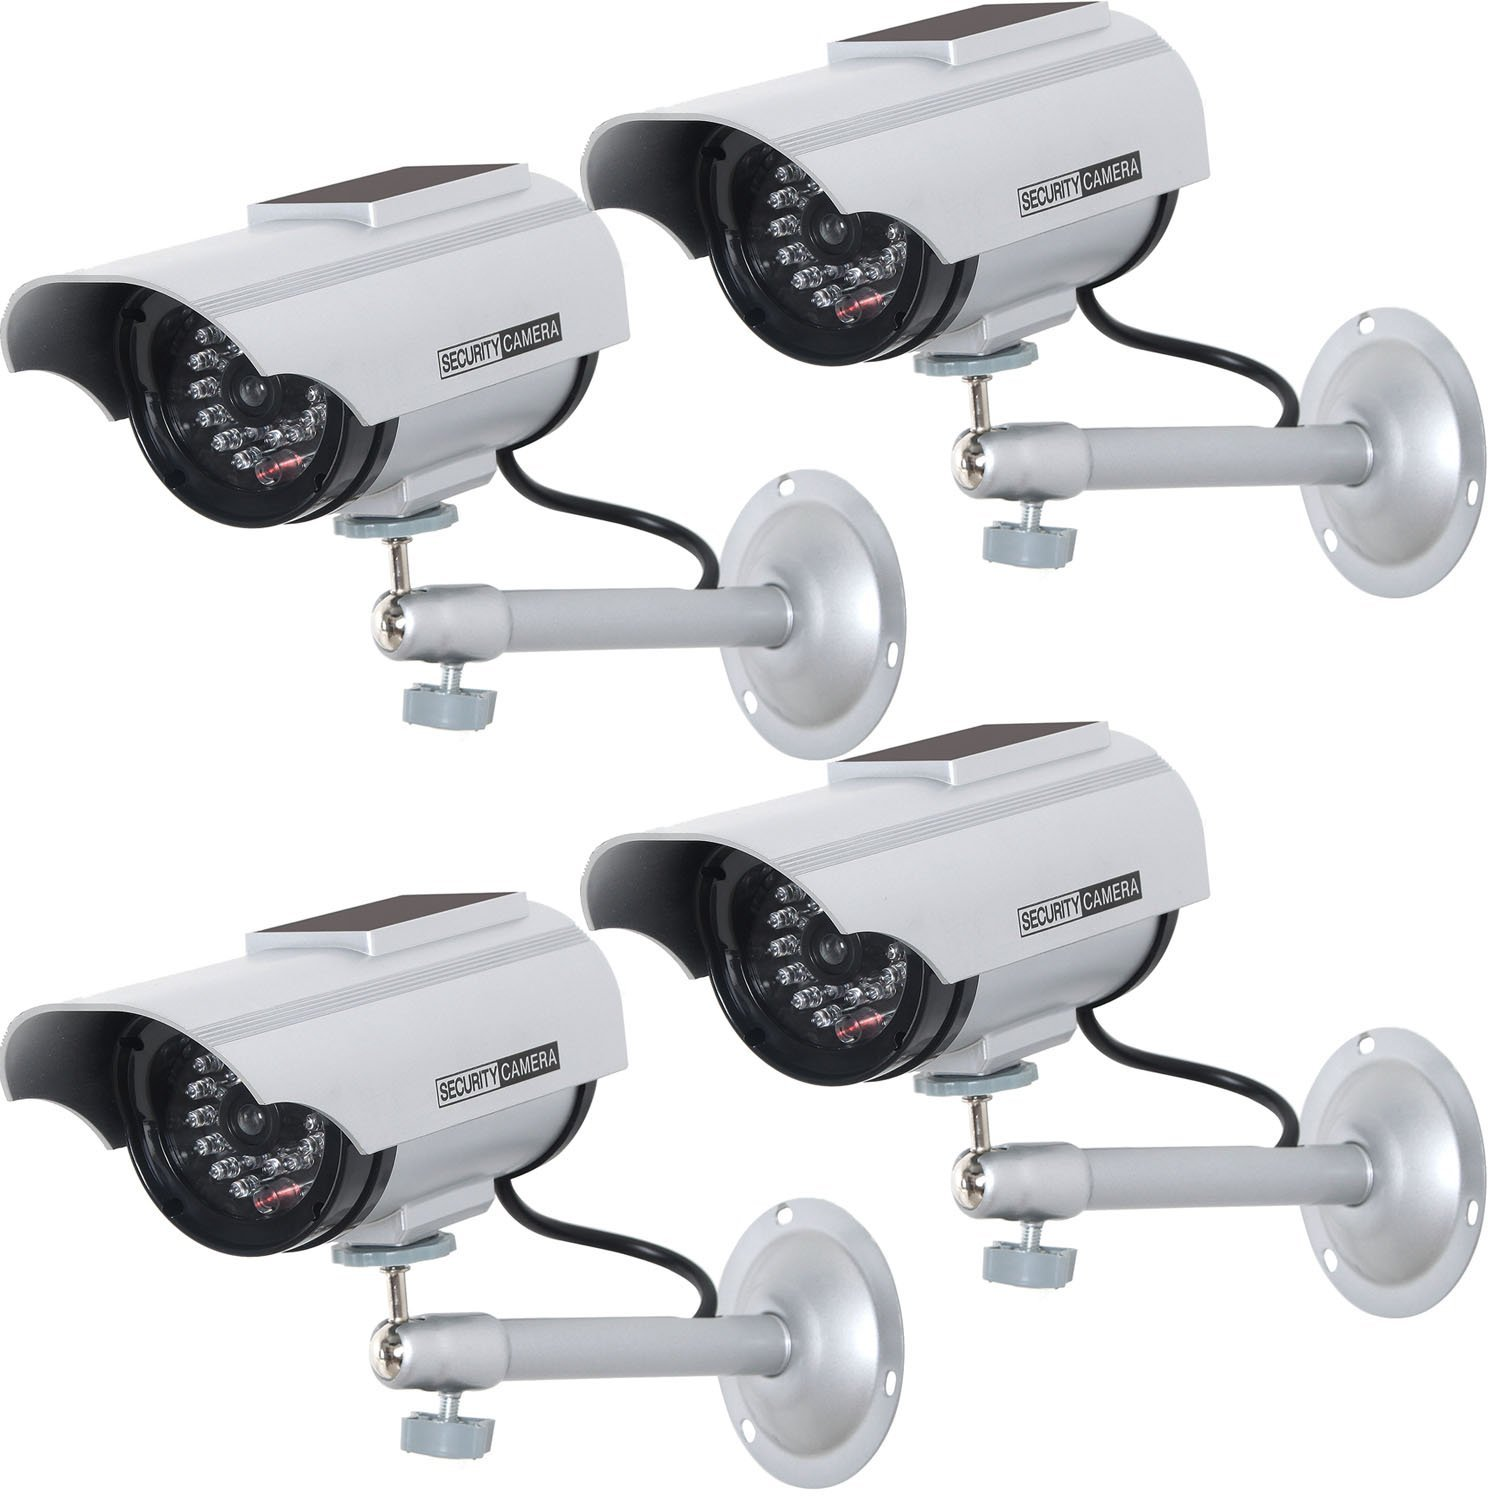 WALI Solar Powered Bullet Dummy Fake Simulated Surveillance Security CCTV Dome Camera Indoor Outdoor with 1 LED Light, Warning Security Alert Sticker Decal (SOLTC-S4), 4 Packs, Silver by WALI